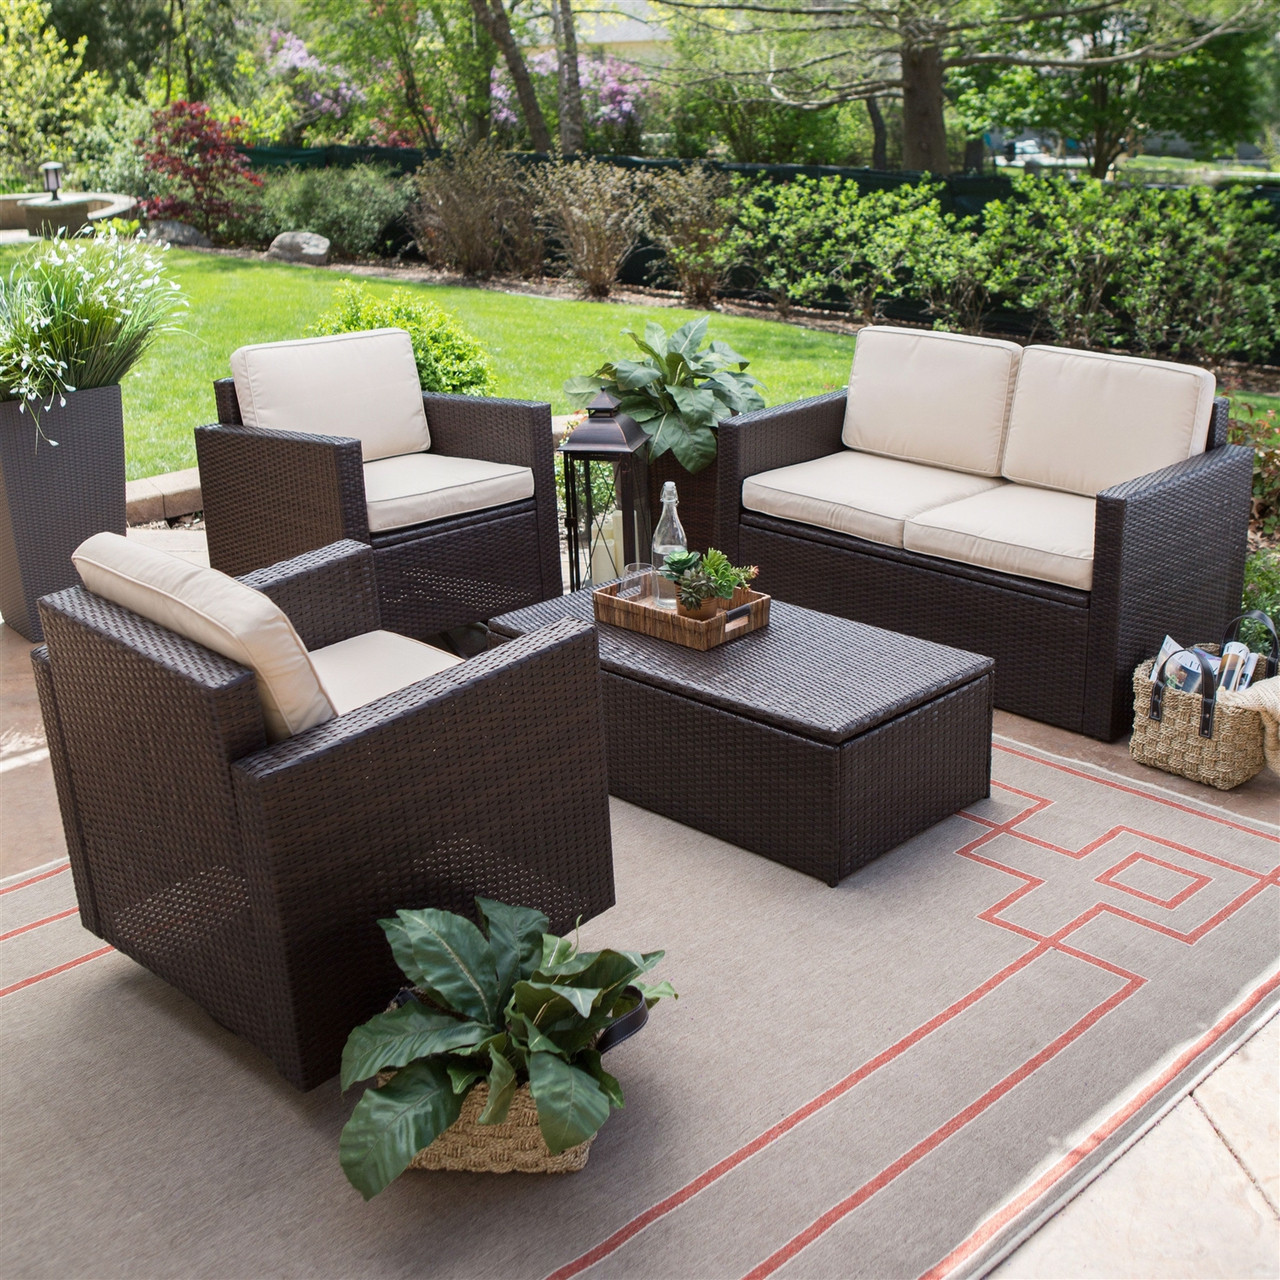 4 PC Patio Furniture Dining Set, 2 Chairs, Loveseat, Coffee Table